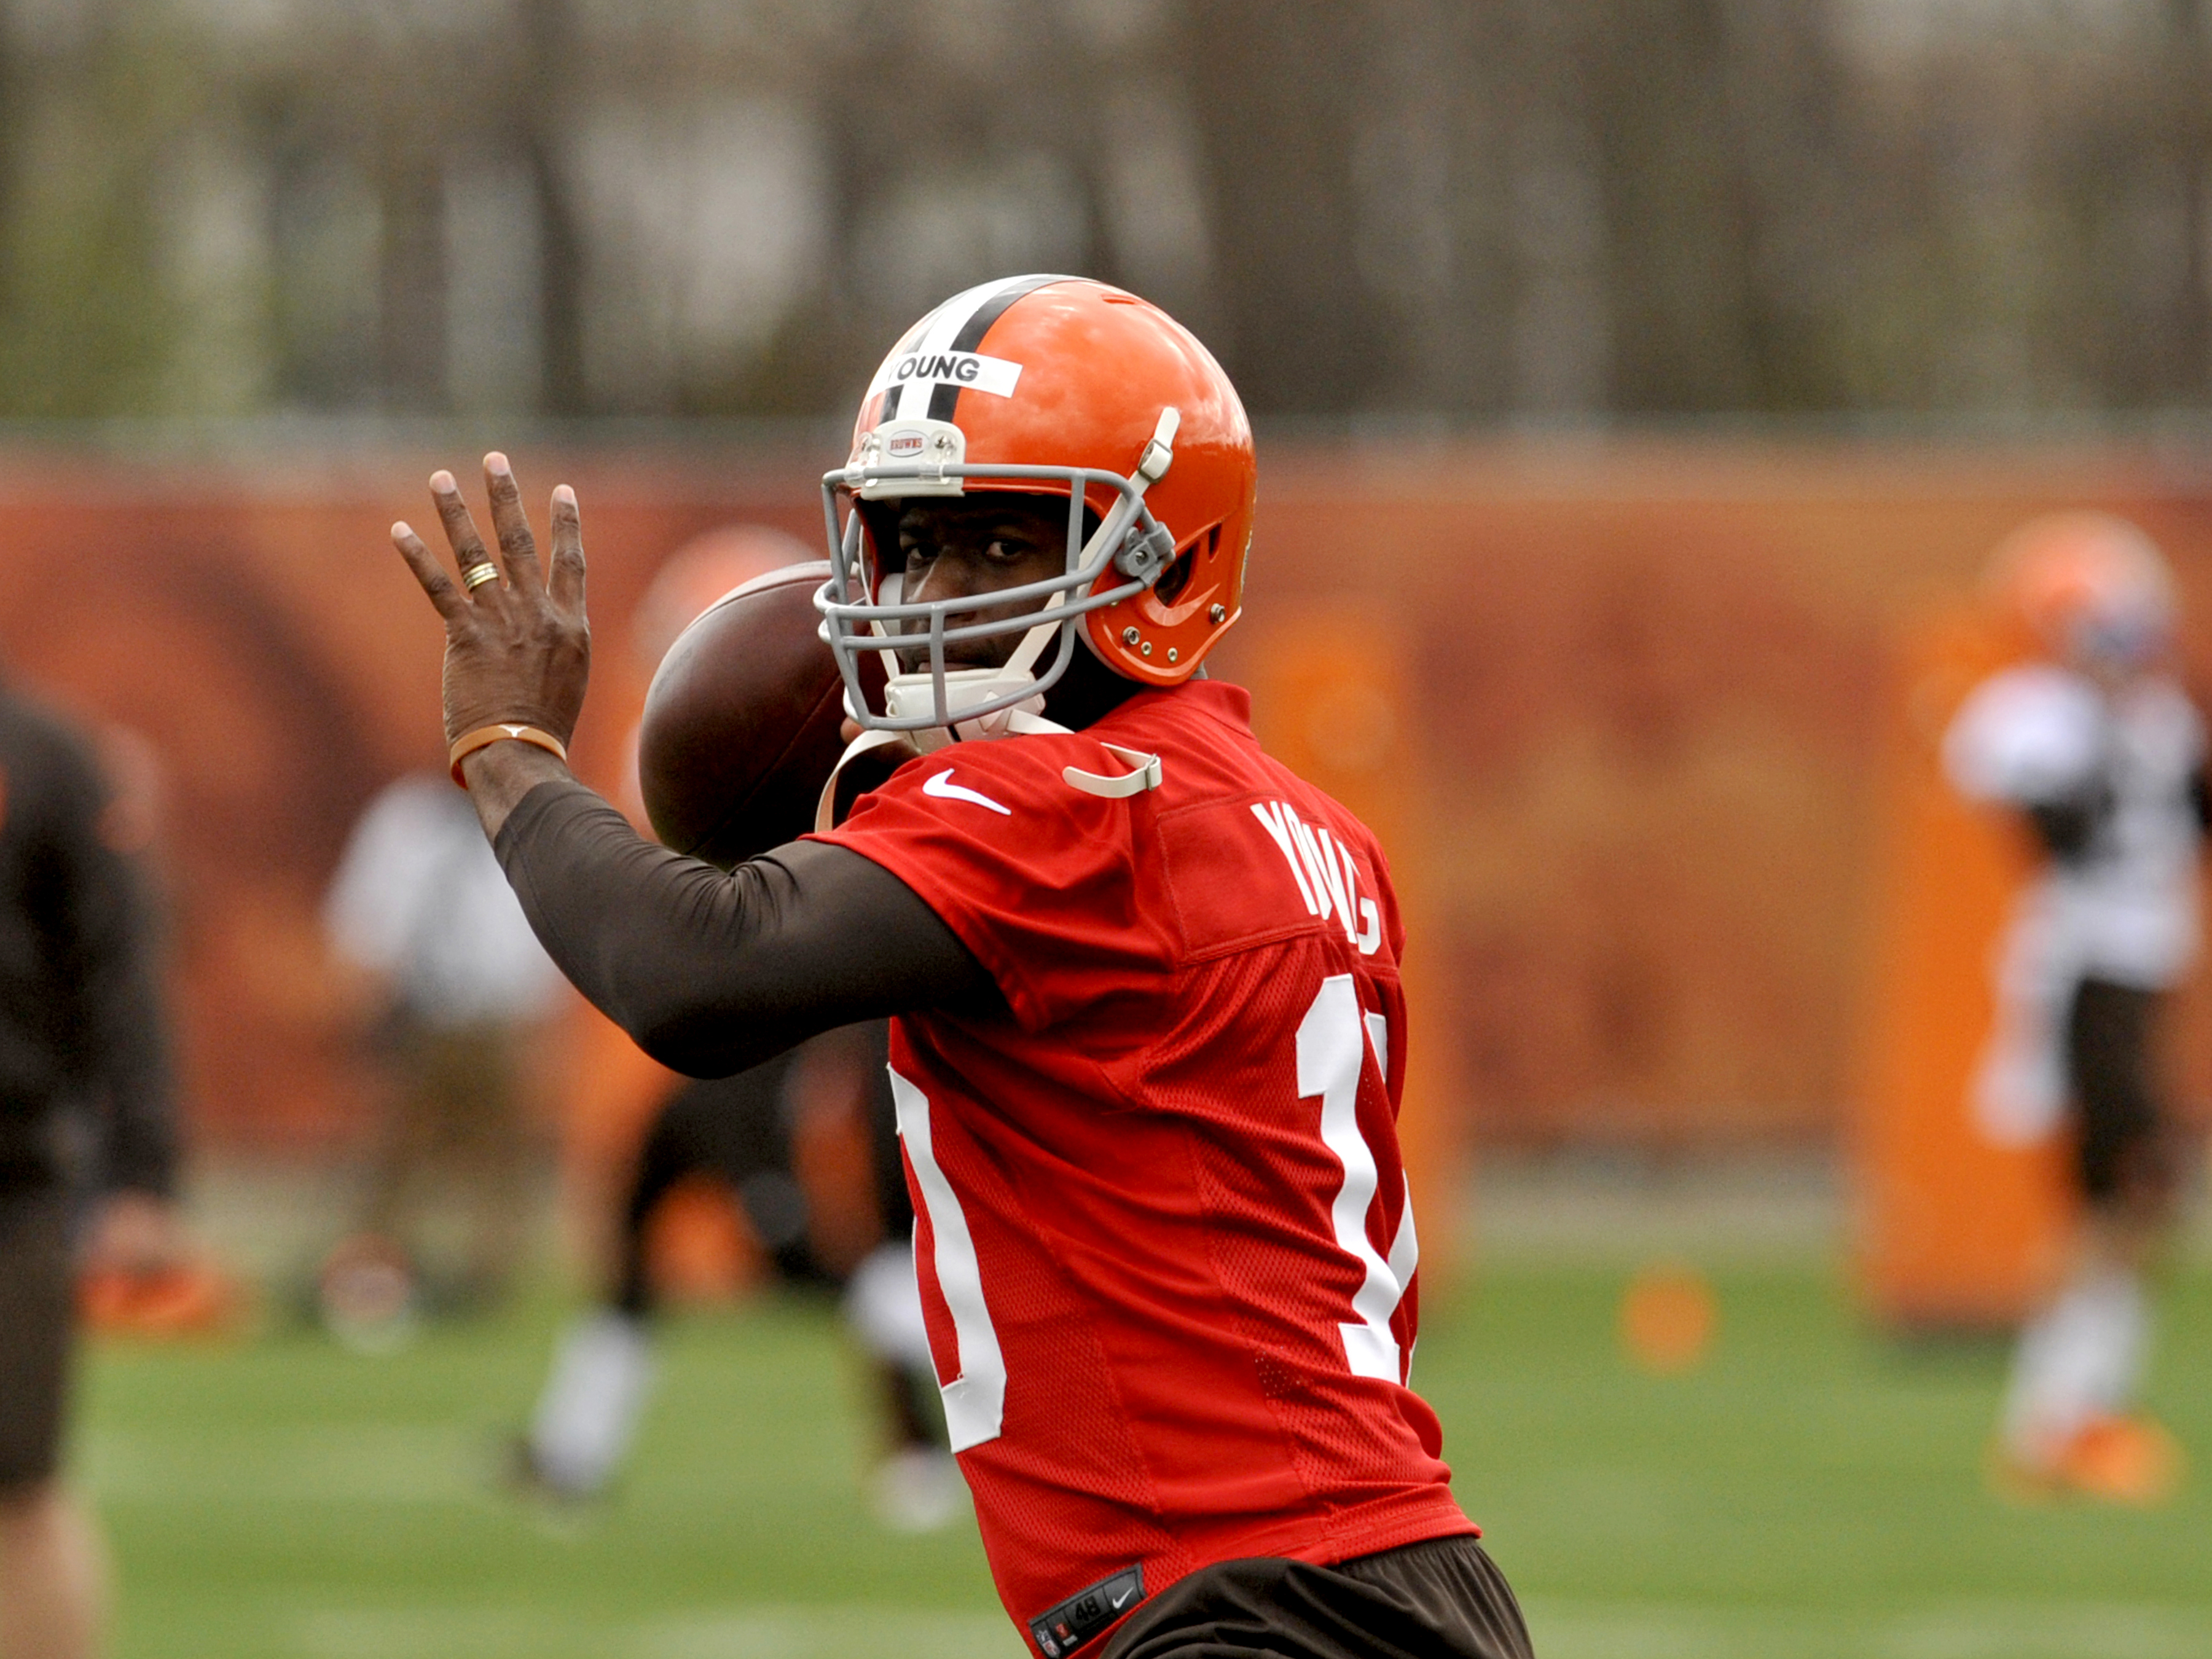 Quarterback Vince Young #10 of the Cleveland Browns throws a pass during a mini camp practice at the Cleveland Browns training facility in Berea, Ohio on May 1, 2014.